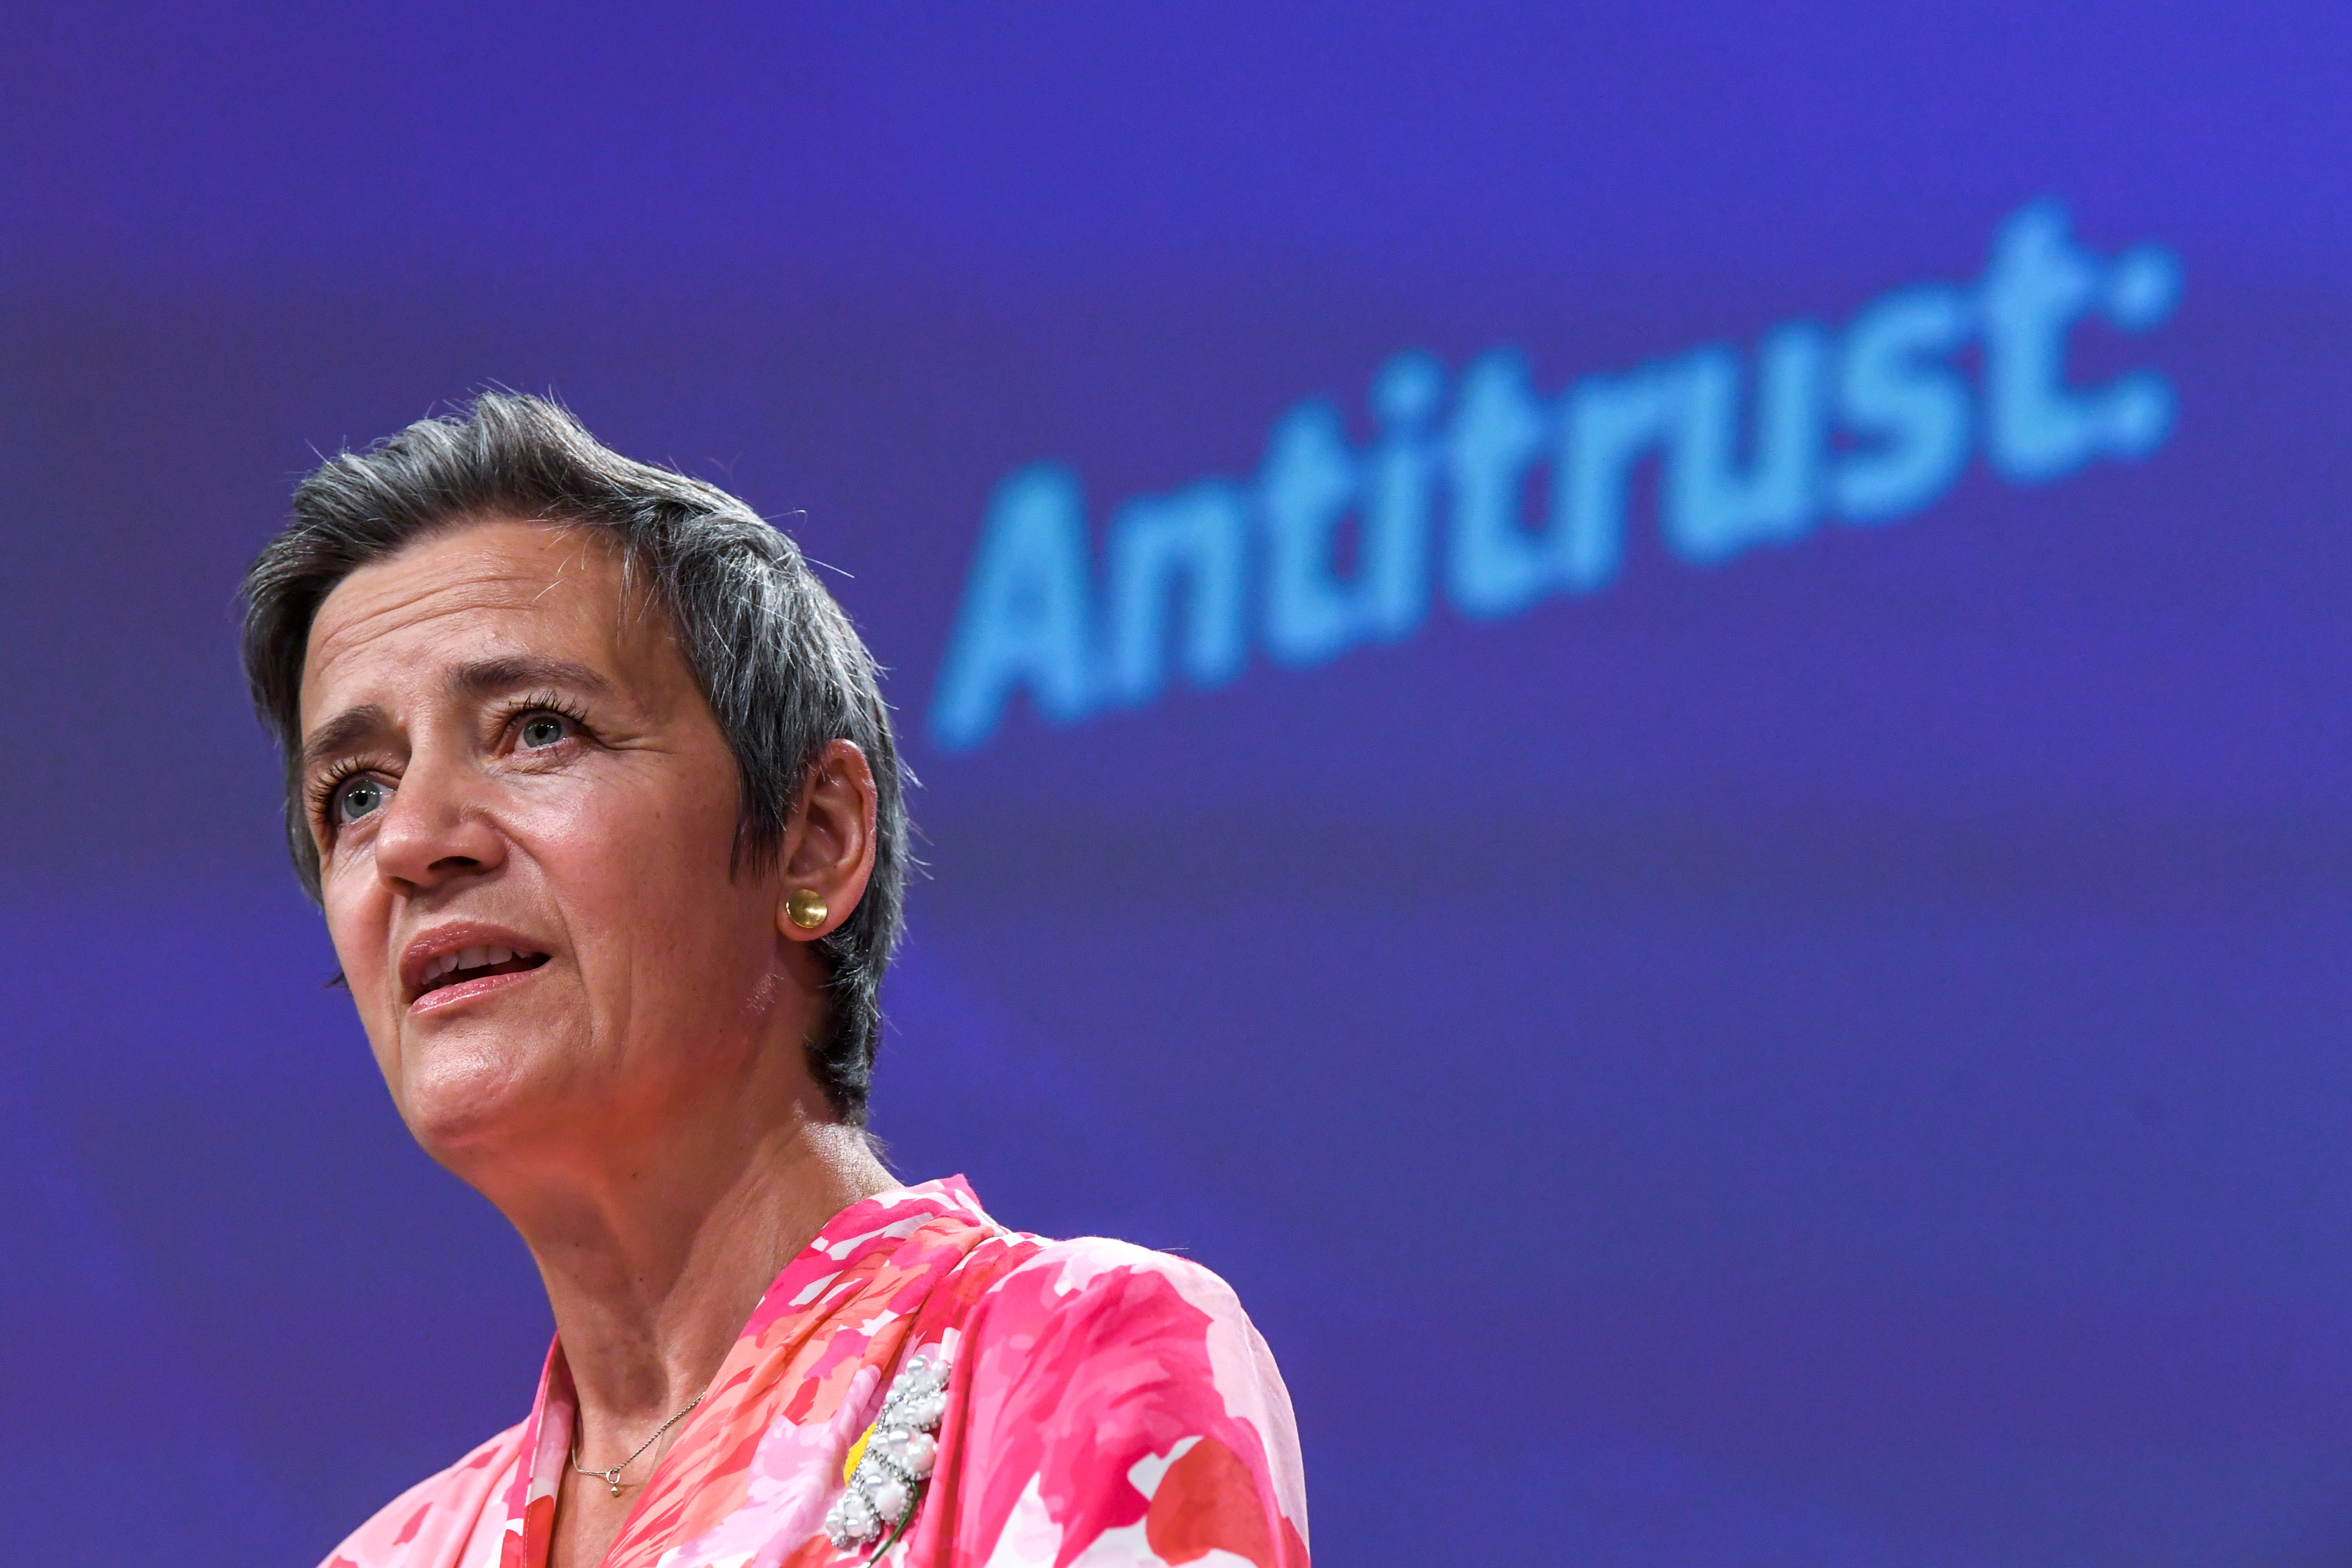 European Commissioner for Europe fit for the Digital Age Margrethe Vestager speaks during a news conference on a competition sector inquiry at the EU headquarters in Brussels, Belgium June 9, 2021. John Thys/Pool via REUTERS